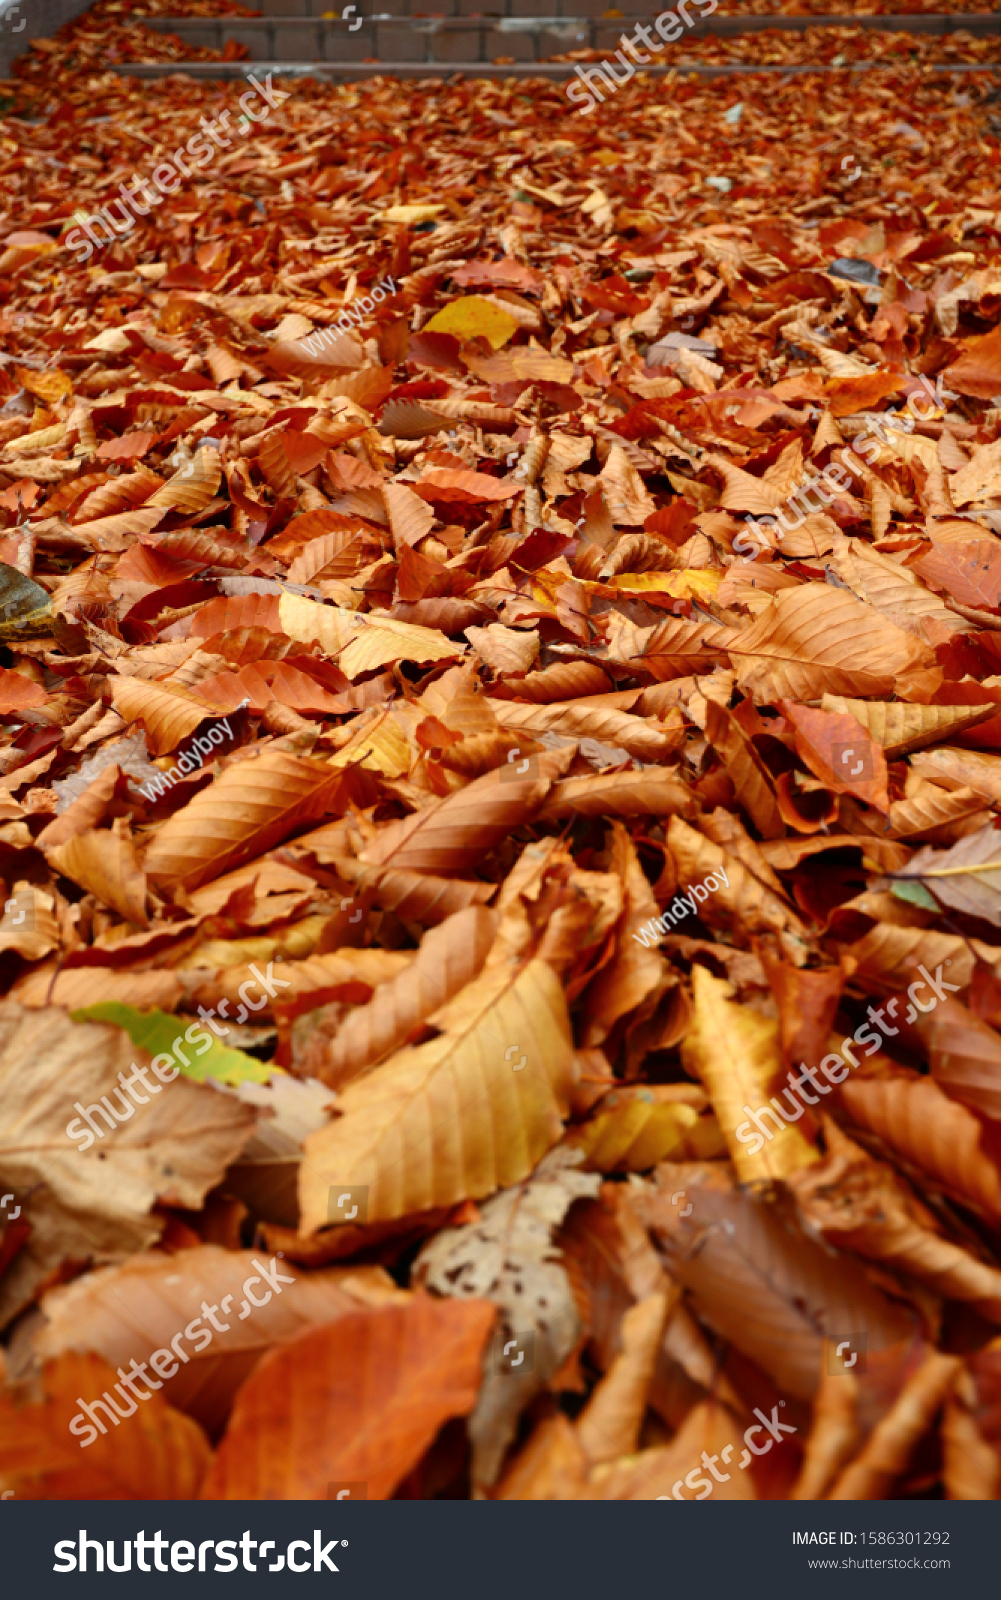 Fall leaves on the ground #1586301292